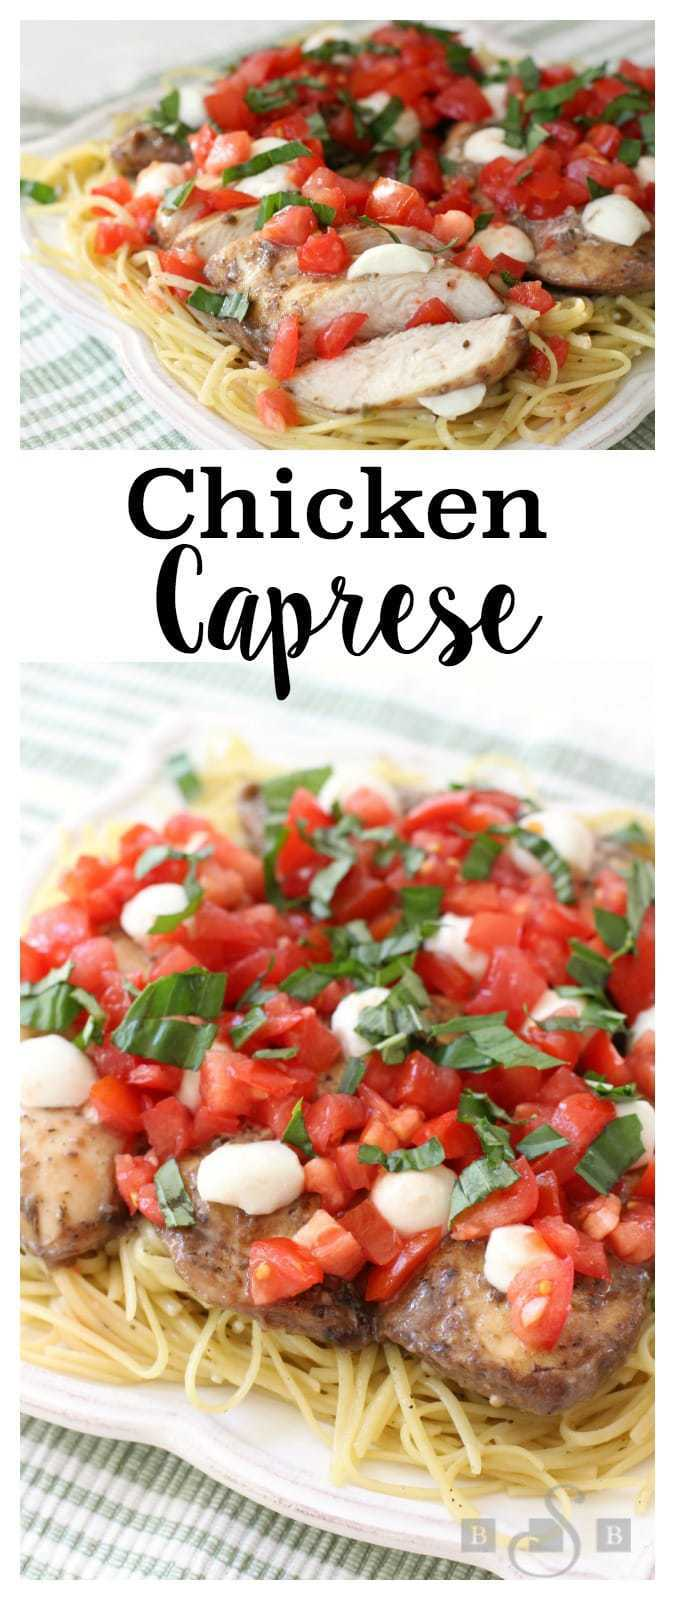 We're having a warm start to Fall here in Utah, which means the tomatoes from my garden are still growing abundantly. It's wonderful! This Chicken Caprese is a variation on a family favorite. I love how simple it is to make. The dish has incredible flavor and I adore the fresh taste. It's easy enough for a weeknight dinner but the end product is so gorgeous, it could easily be for guests.